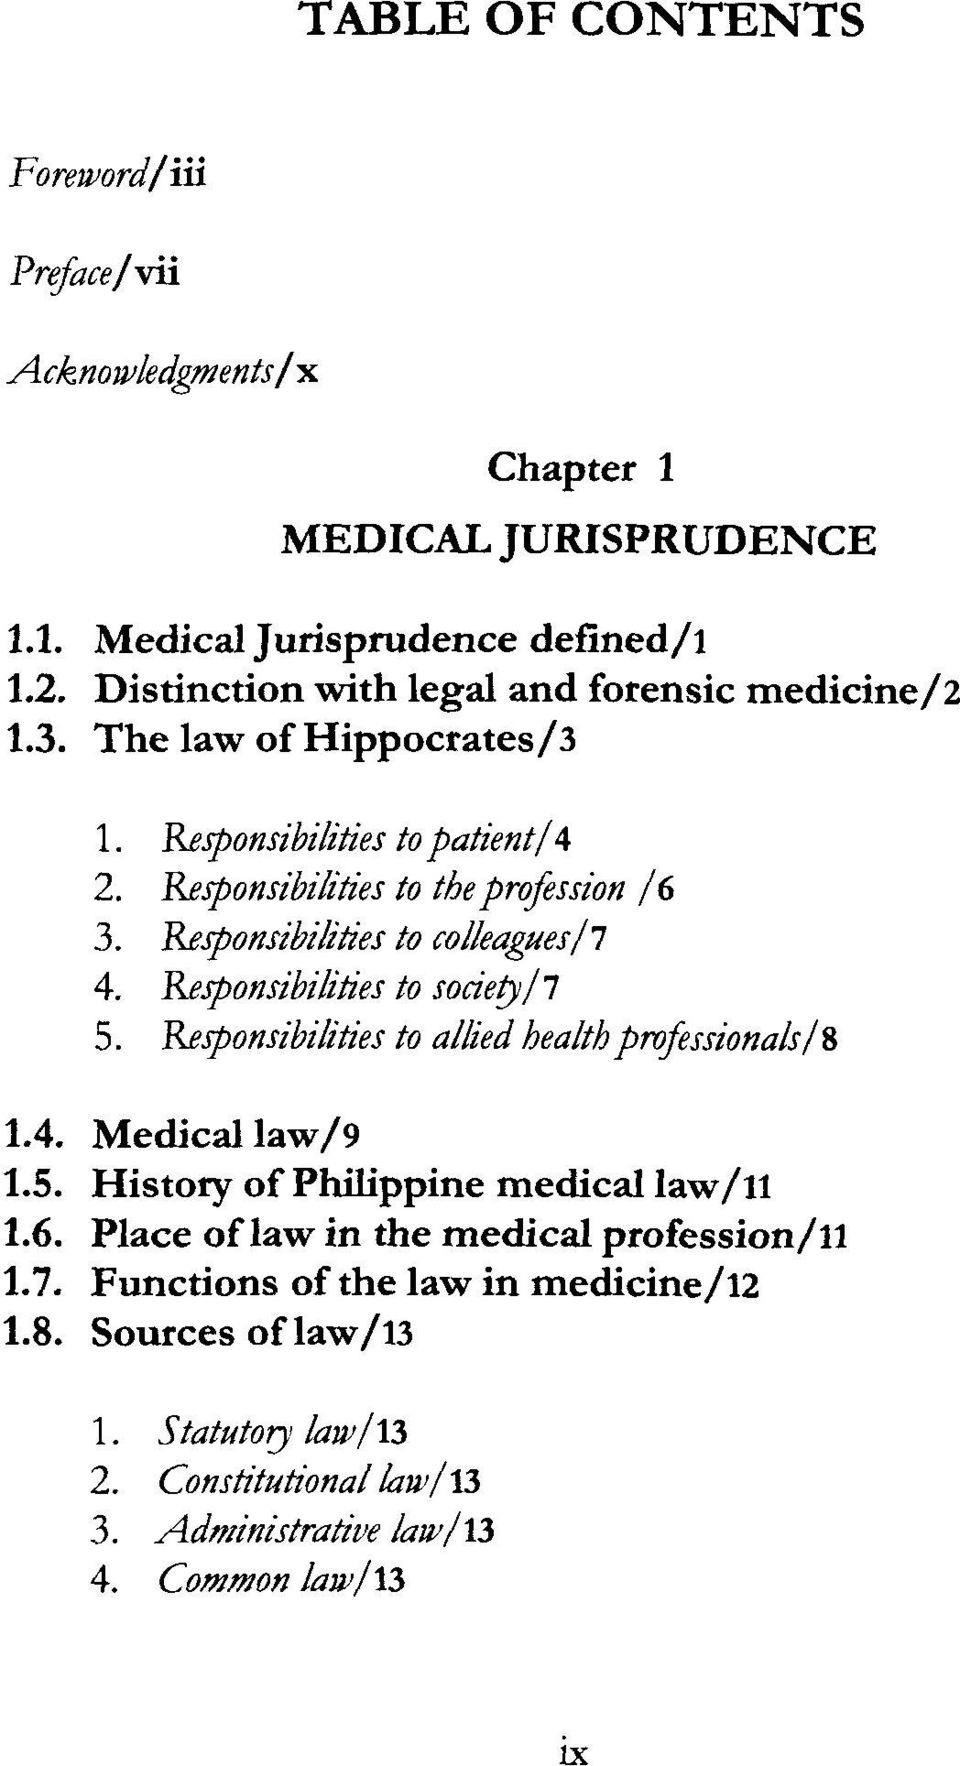 Basics of philippine medical jurisprudence and ethics pdf responsibilities to colleaguesl 4 responsibilities to society 11 5 responsibilities to allied fandeluxe Choice Image